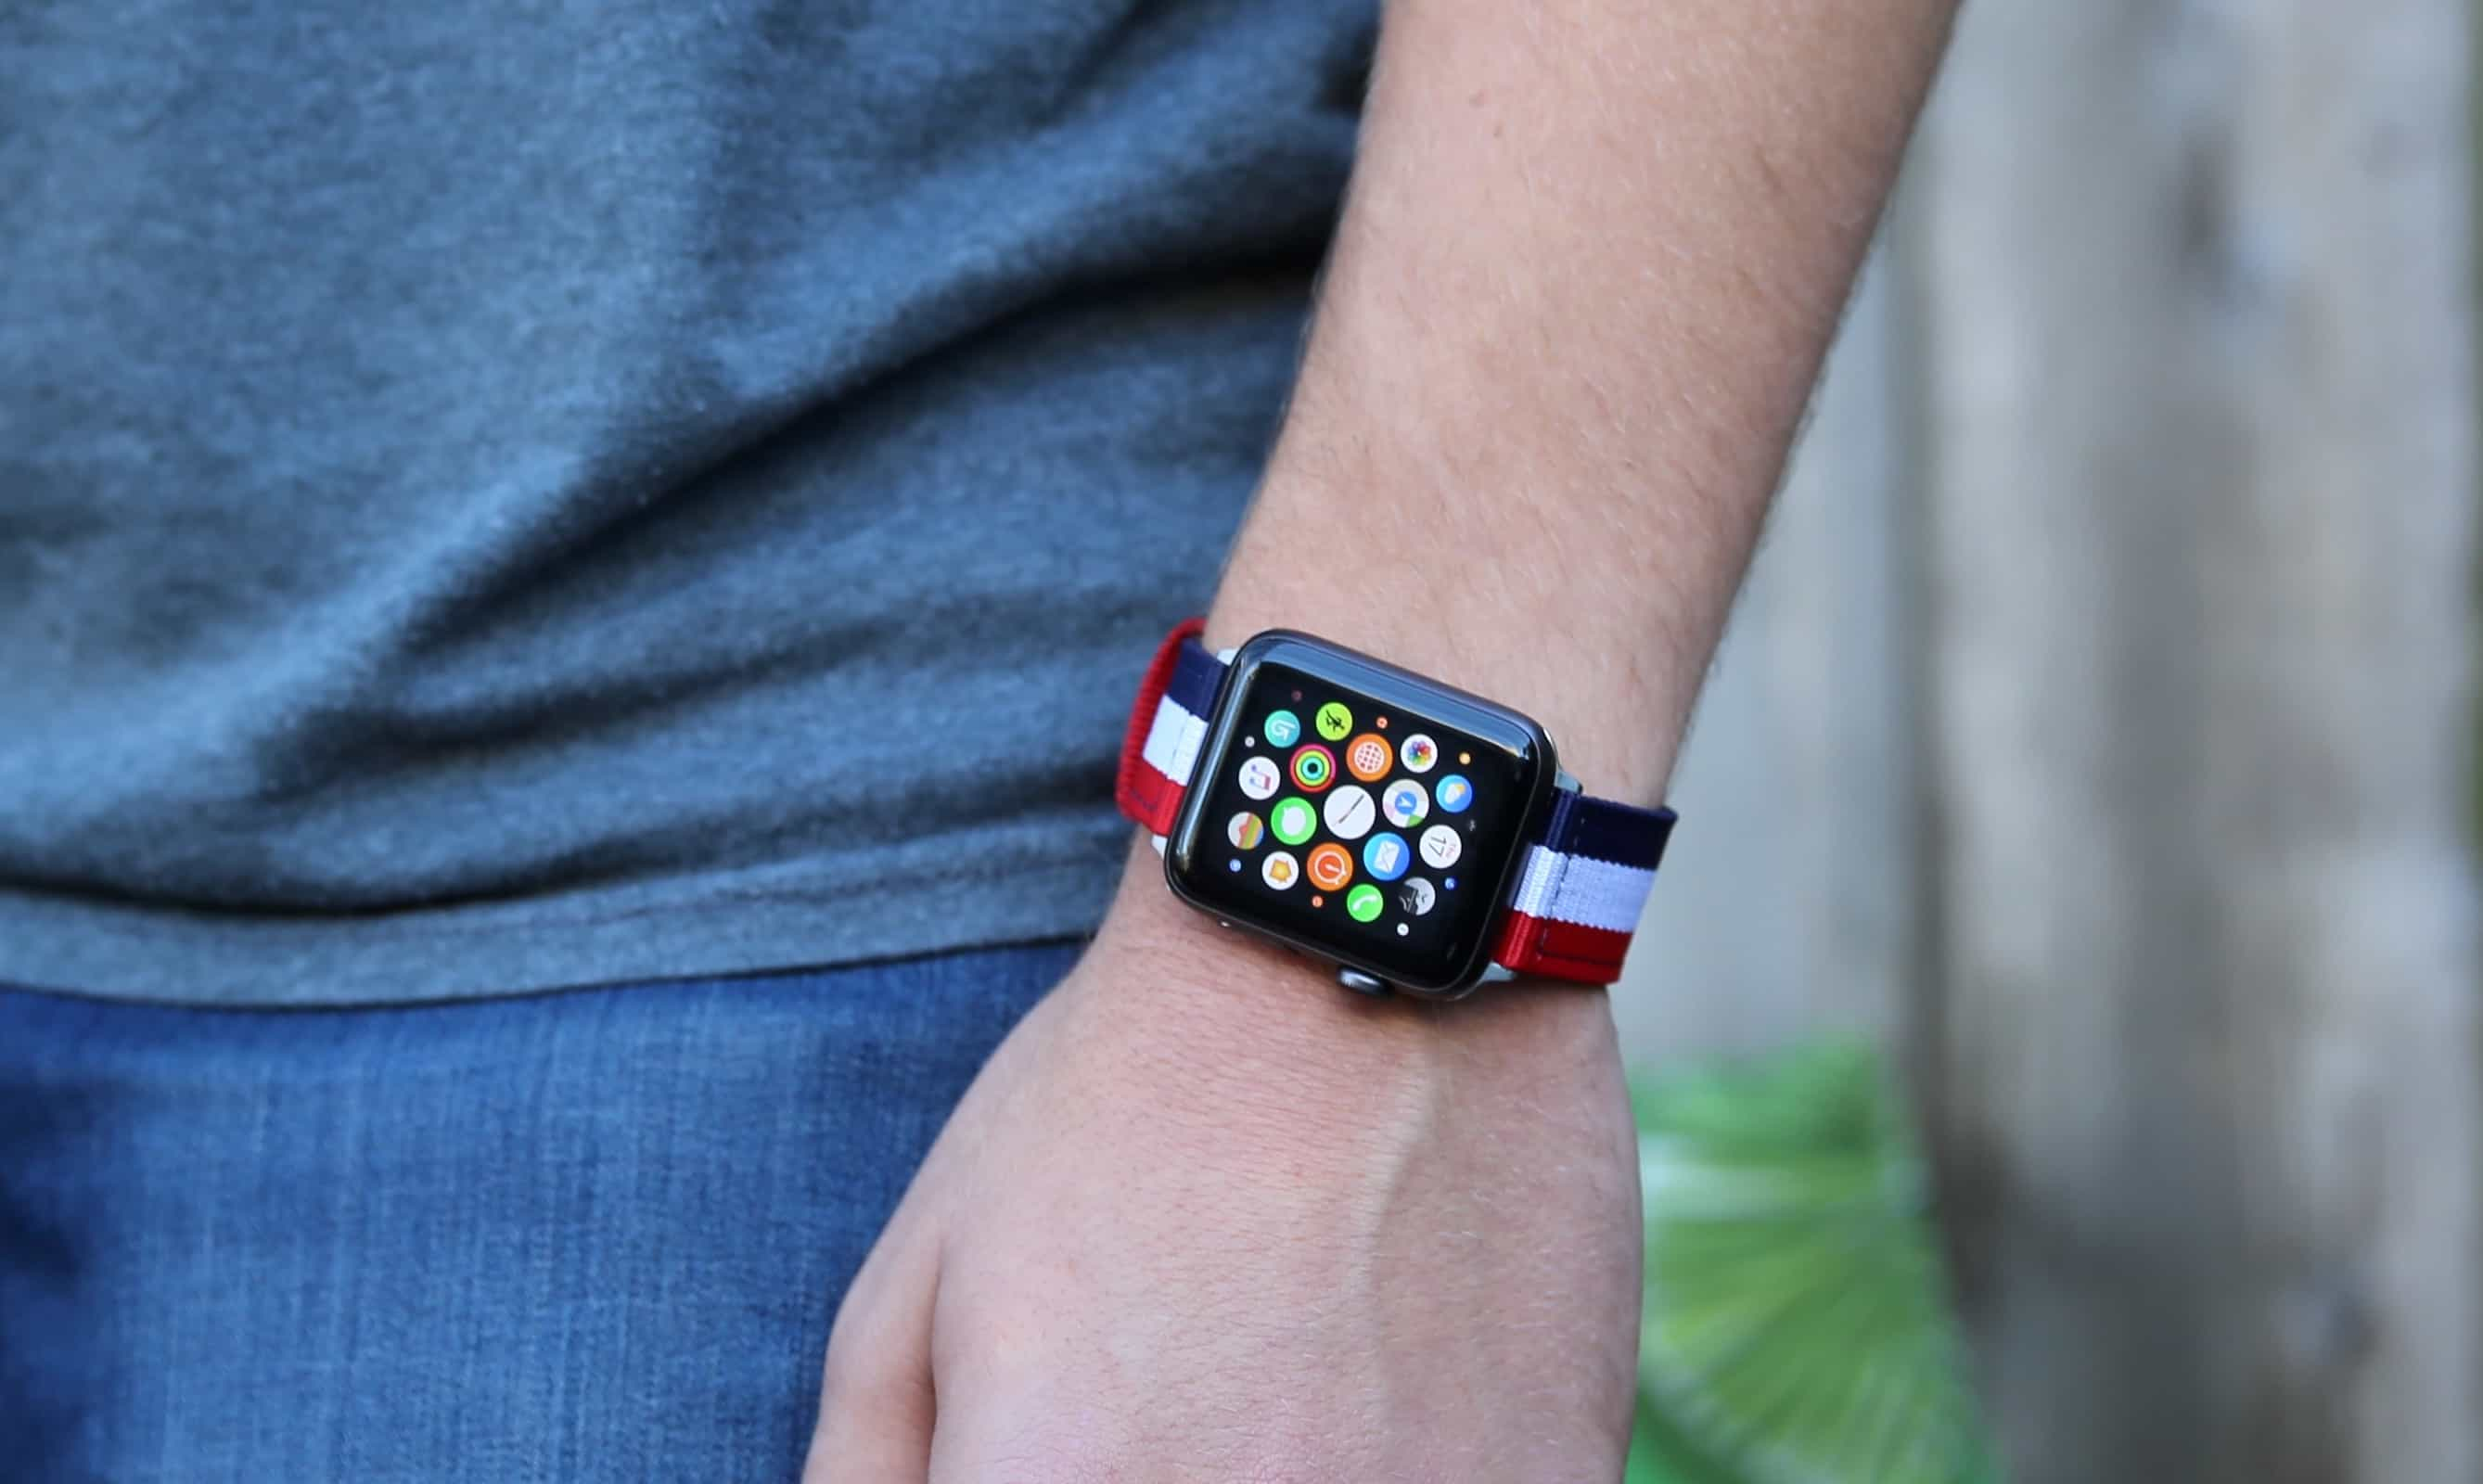 Nyloon's Elysee Nylon Band for Apple Watch in navy, white and red has a comfortable, fabric-like feel.